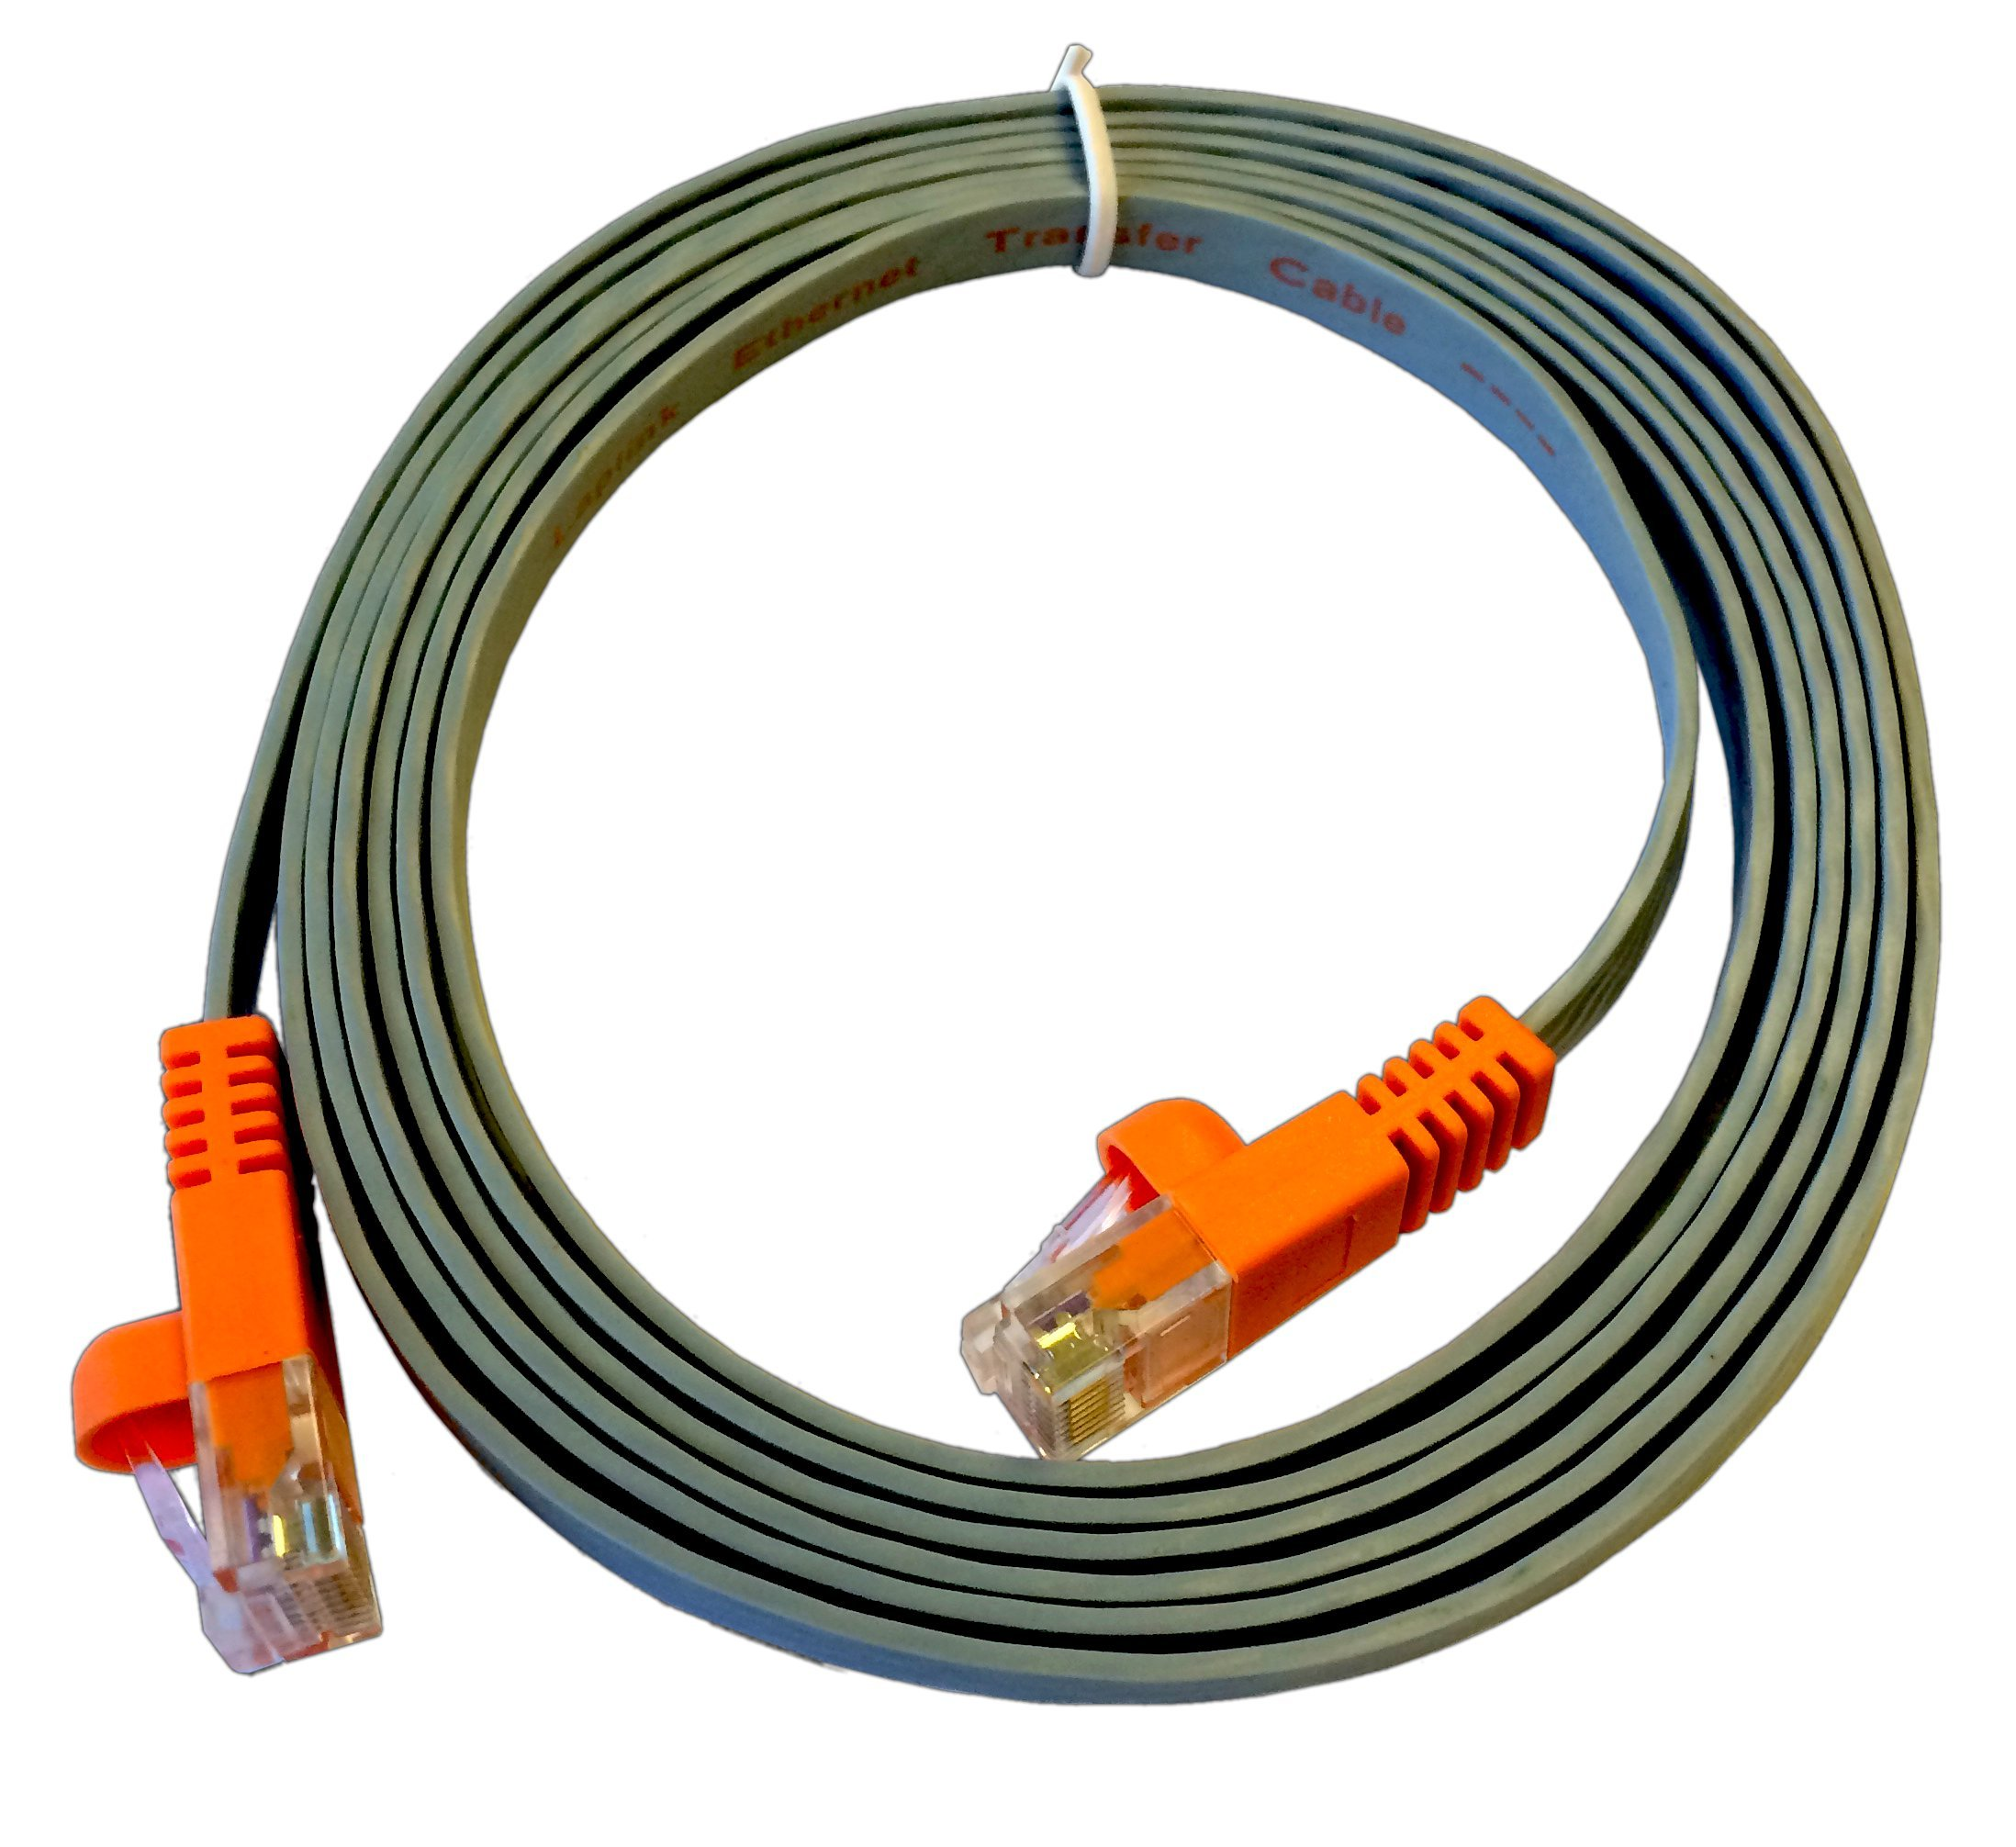 Laplink 7' Ethernet High-Speed Transfer Cable for PCmover by Laplink Software Inc.